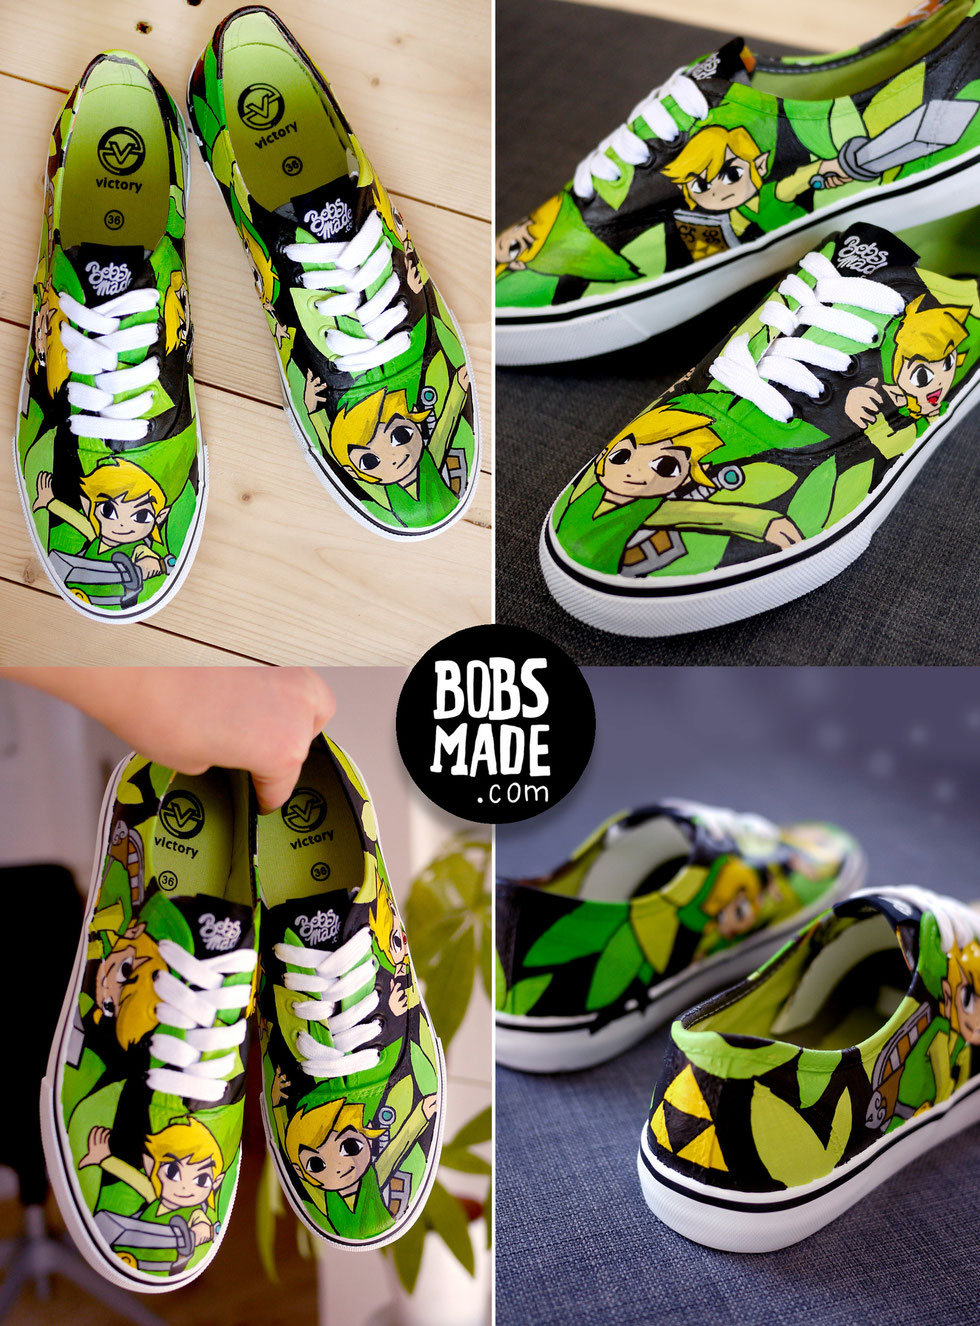 Link Windwaker Shoes Bobsmade